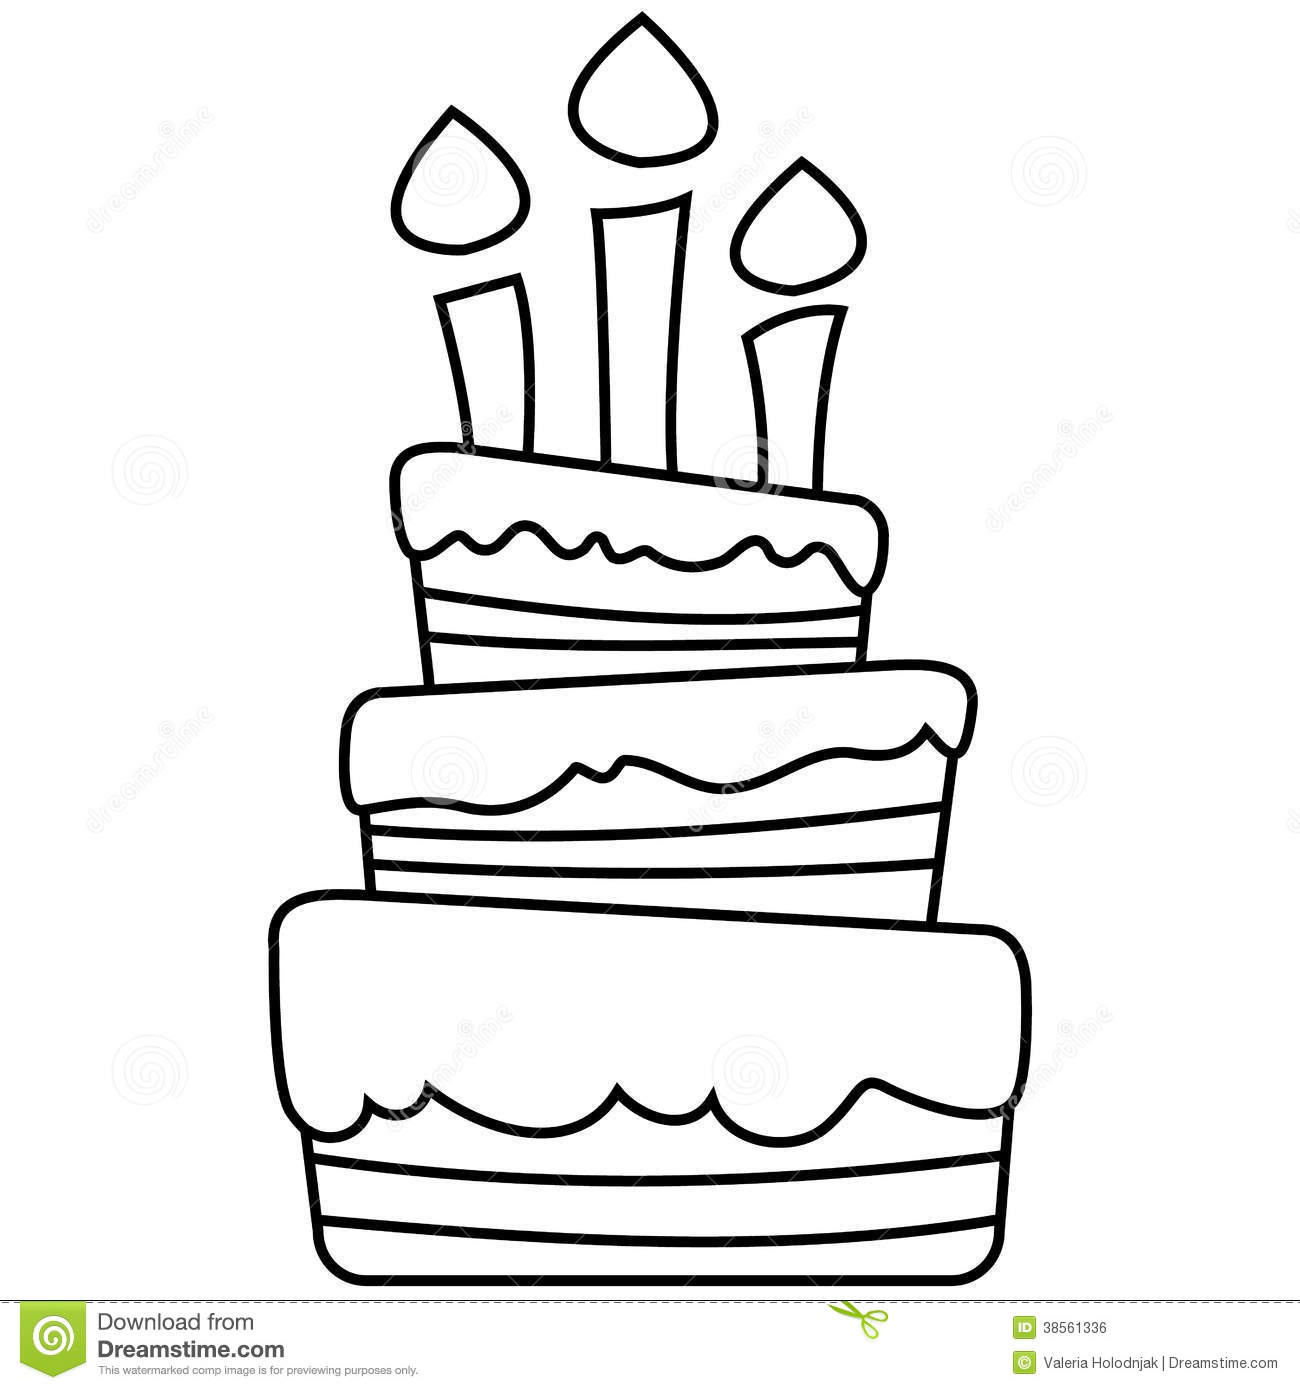 Cake Clipart Images Black And White : Vector Illustration Of Birthday Cake Royalty Free Stock ...